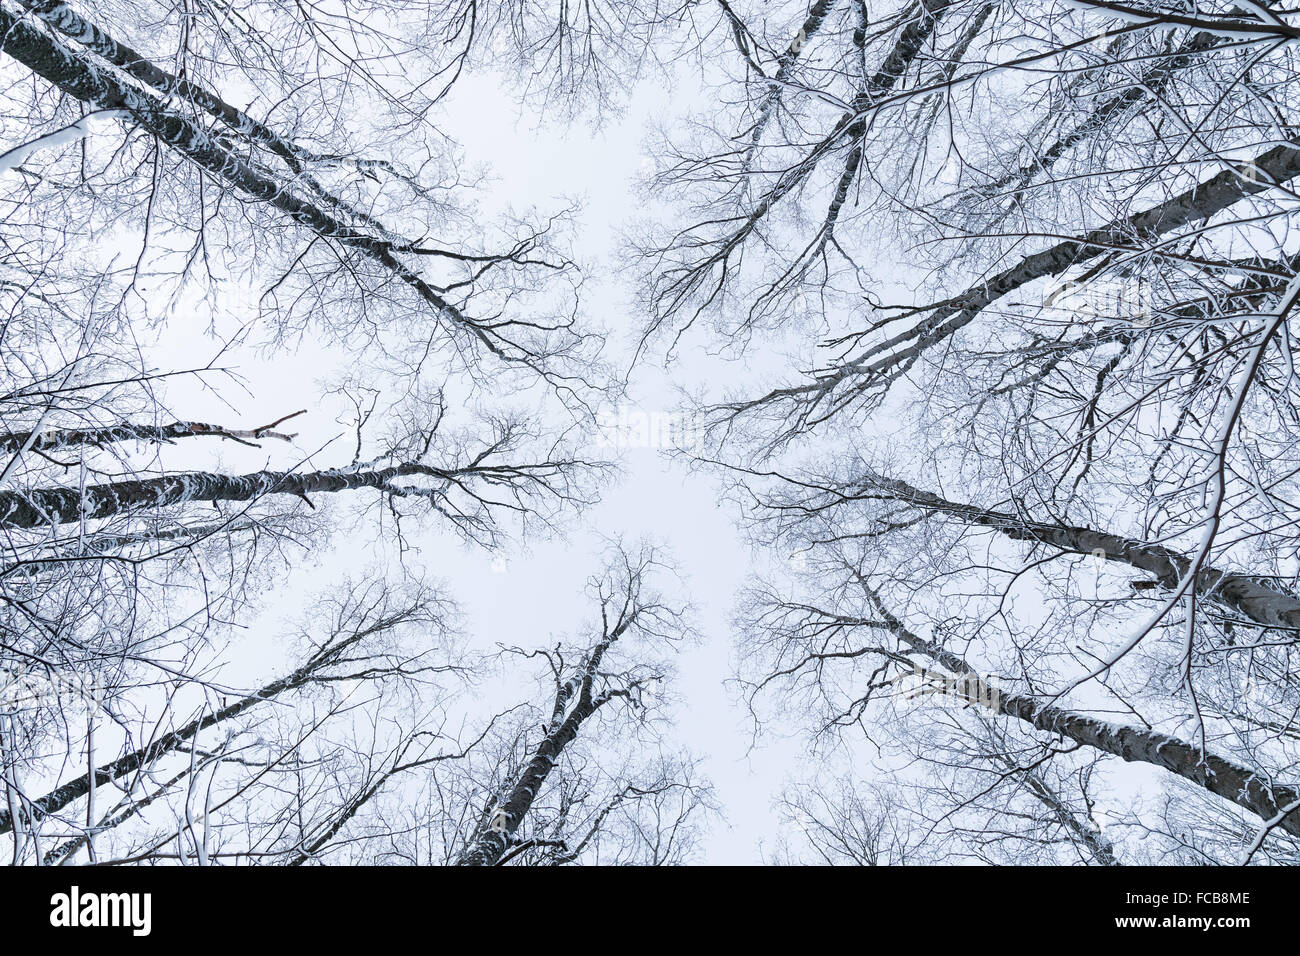 Snowy trees in a forest viewed from below in the winter. - Stock Image